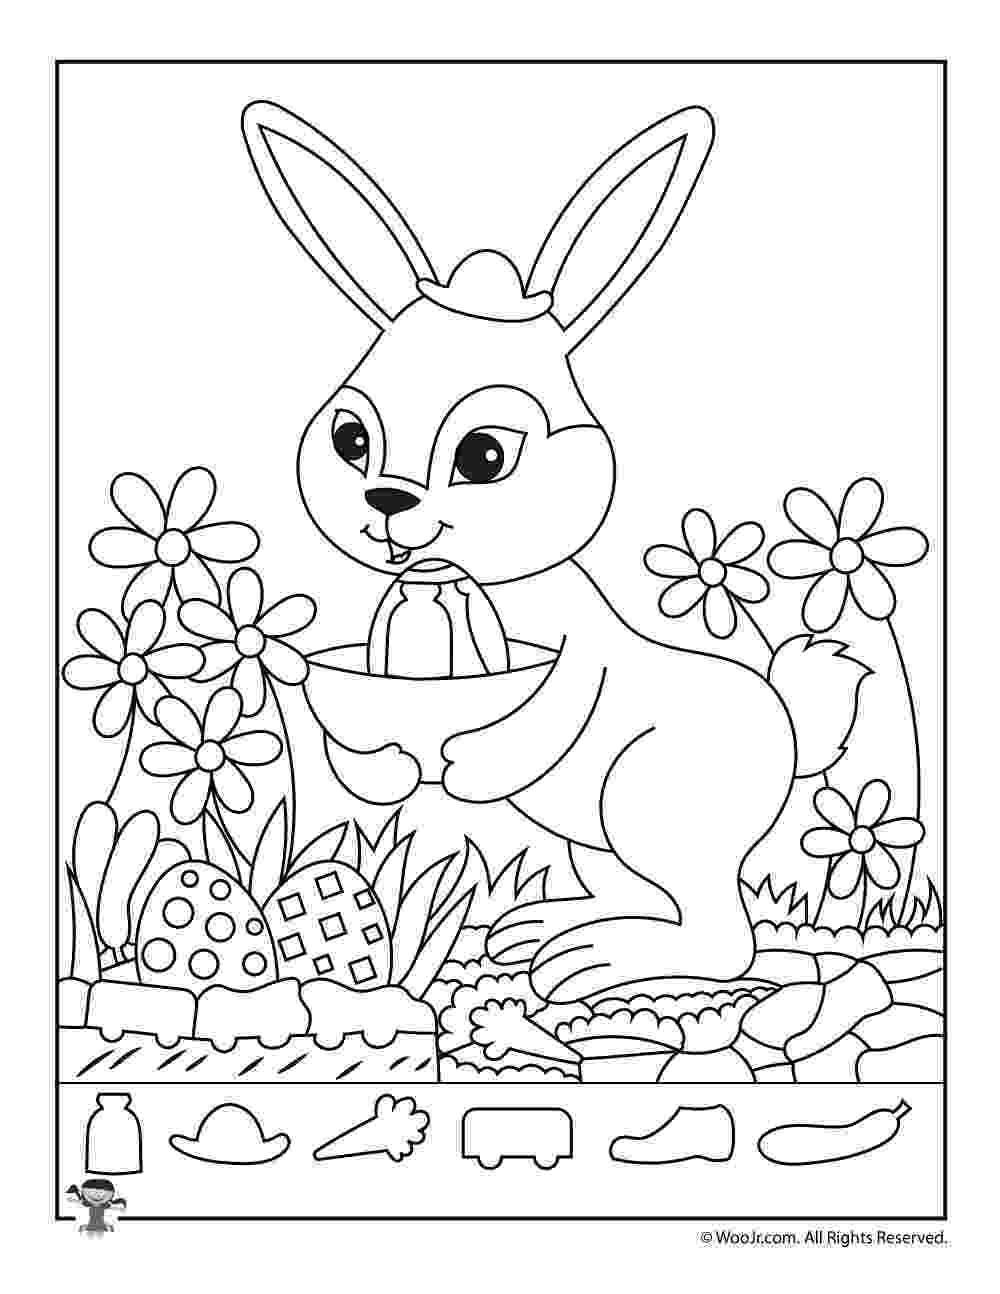 printable easter pictures free easter printable coloring pages for kids easter pictures easter printable